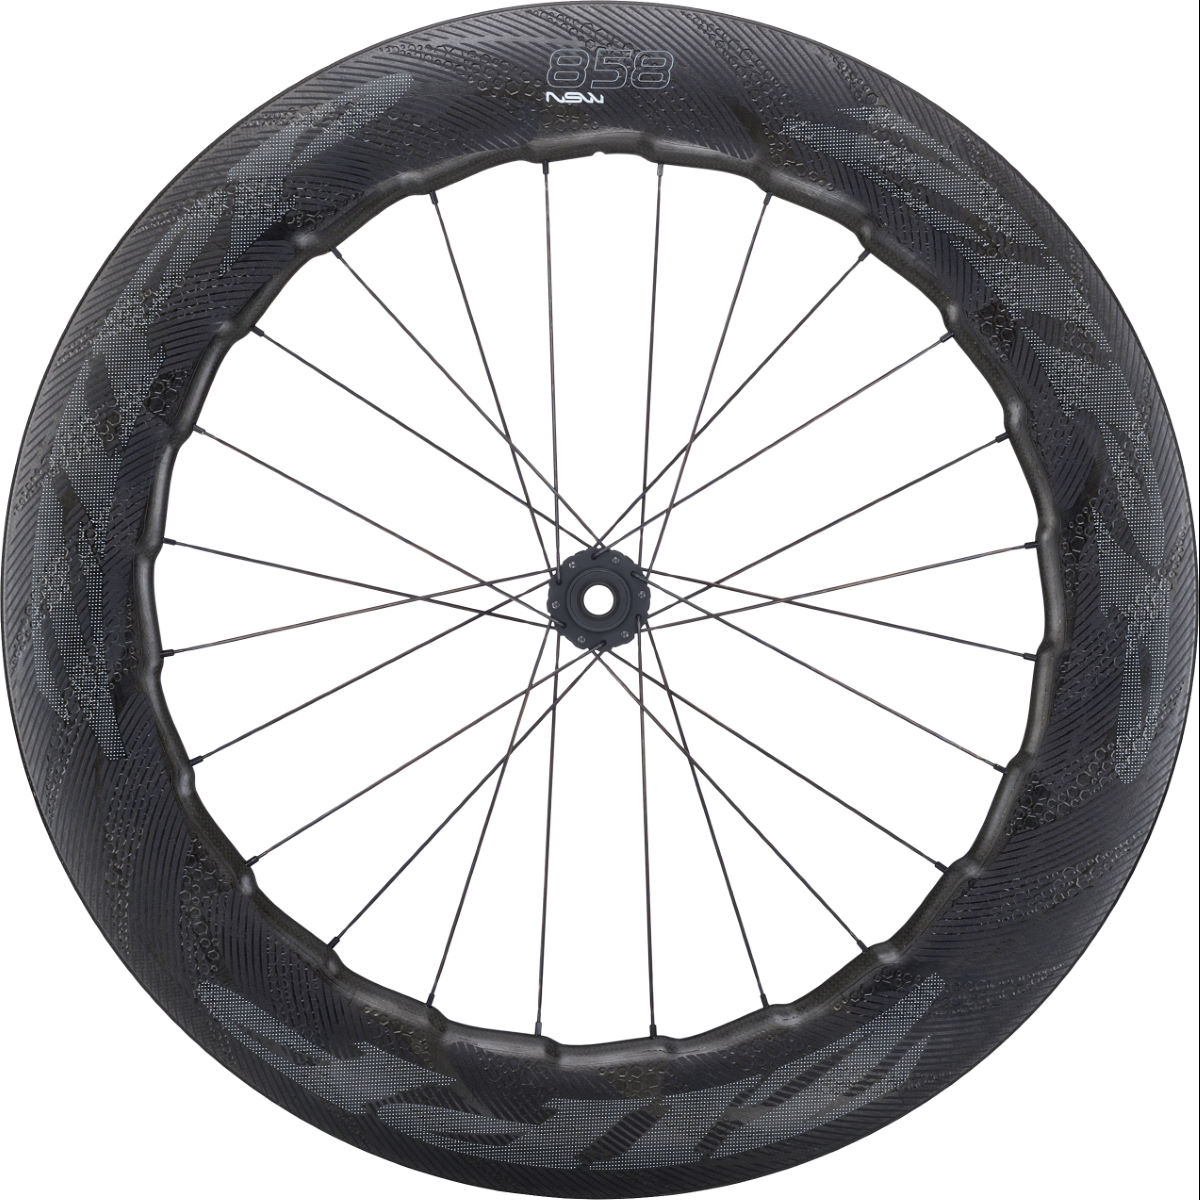 Zipp 858 NSW Carbon Clincher Centre Lock DB Front Wheel   Performance Wheels